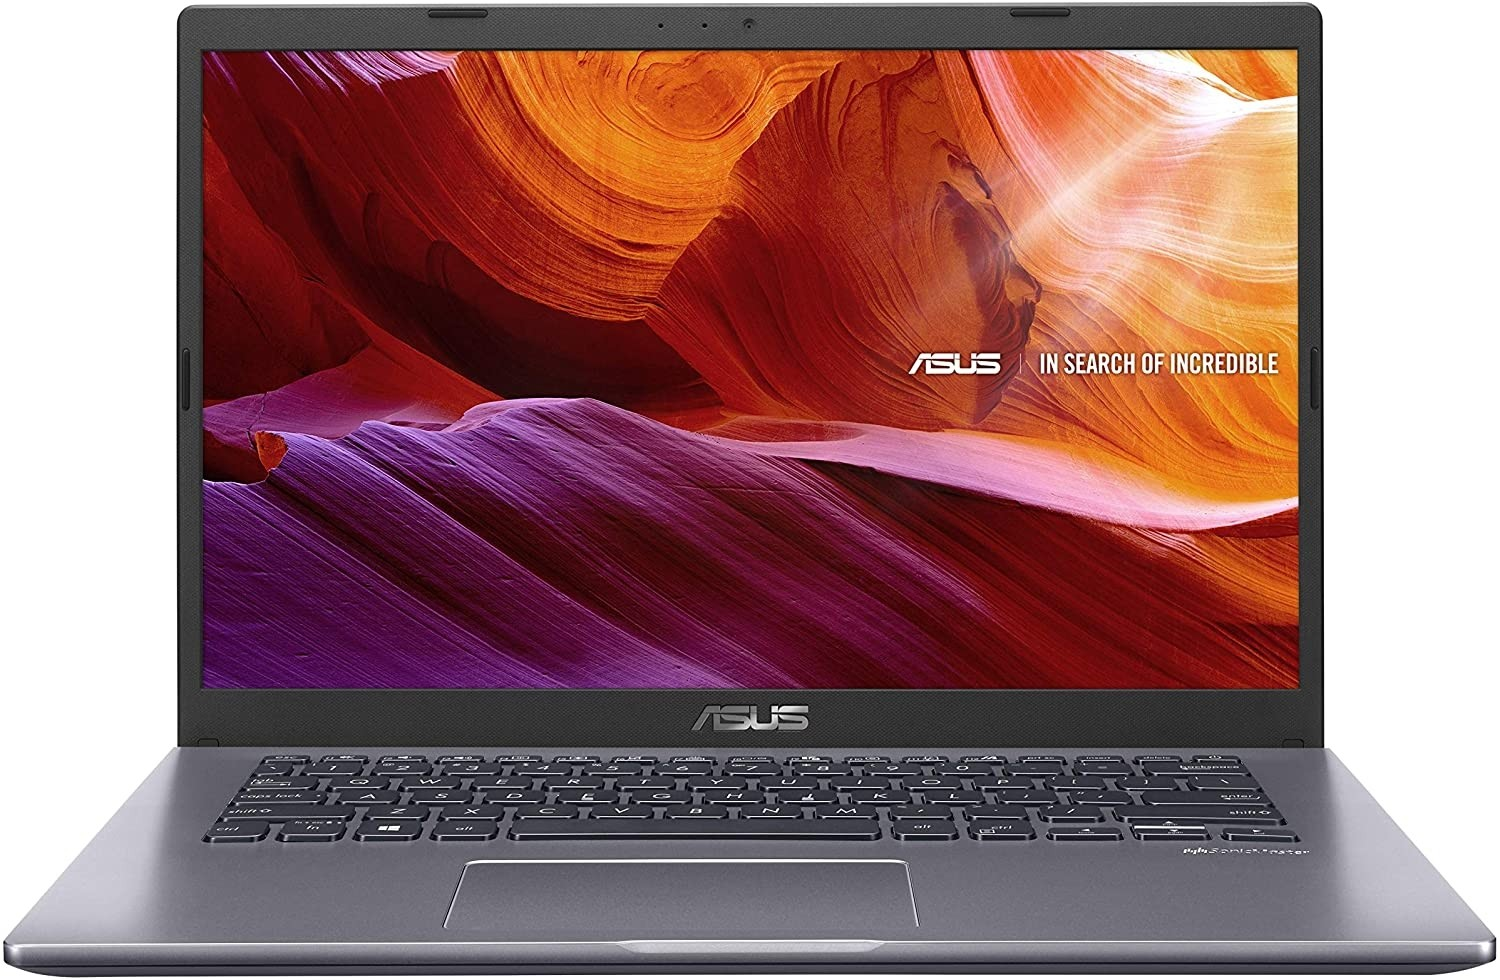 Refurbished laptops & desktops - ASUS VIVOBOOK 14 M409DA-EK456T AMD DUAL CORE ATHLON SILVER-3050U 14-INCH FHD COMPACT AND LIGHT LAPTOP (8GB RAM/256GB NVME SSD/WINDOWS 10/INTEGRATED GRAPHICS/FP READER/1.60 KG), SLATE GREY